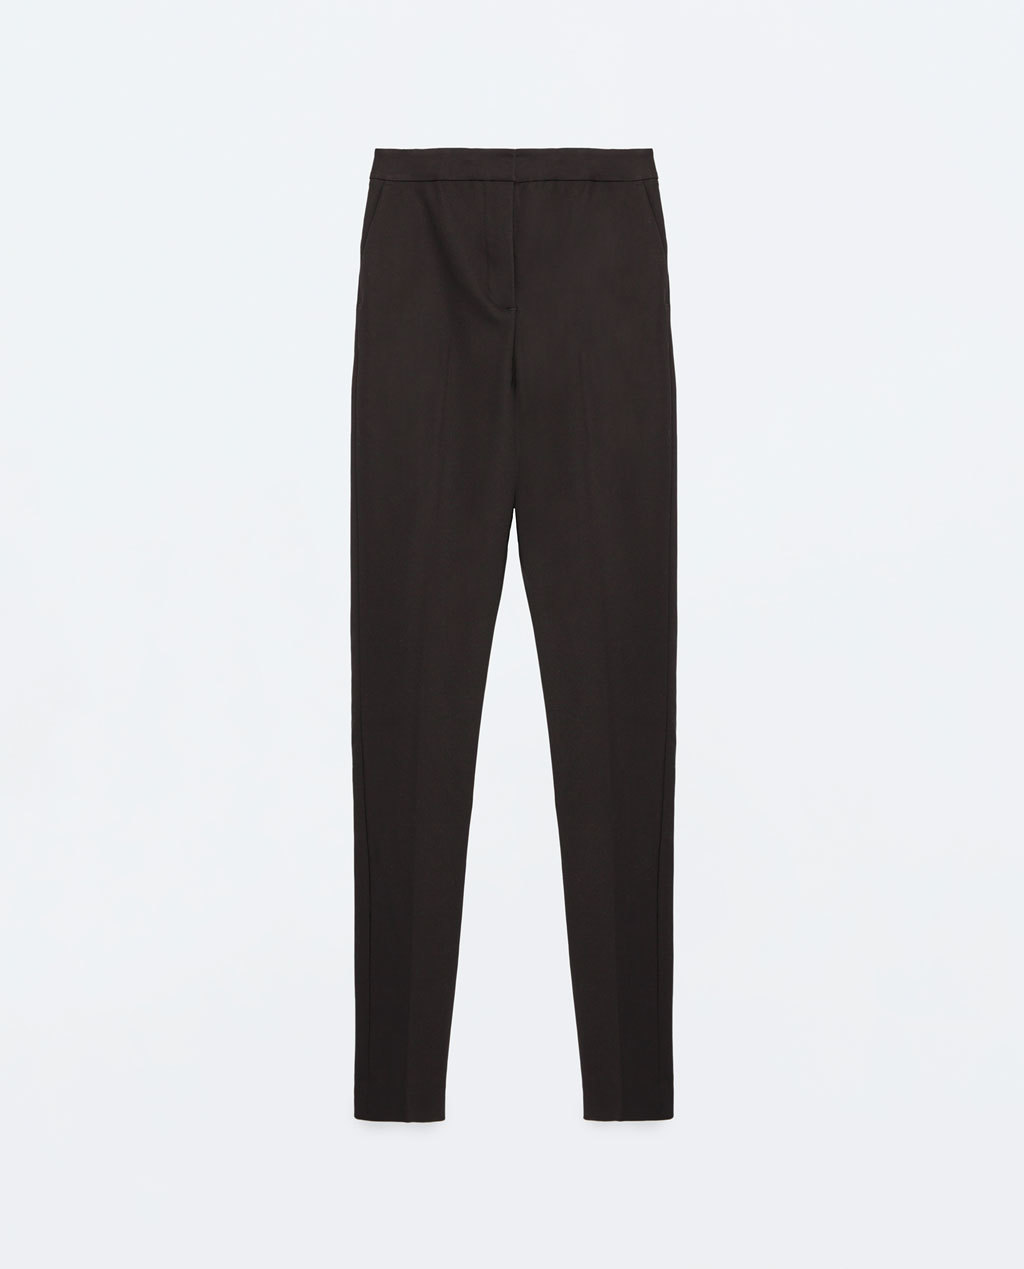 High Waist Skinny Trousers - length: standard; pattern: plain; style: peg leg; waist: high rise; predominant colour: black; occasions: casual, evening, creative work; fibres: cotton - stretch; fit: tapered; pattern type: fabric; texture group: woven light midweight; season: s/s 2016; wardrobe: basic